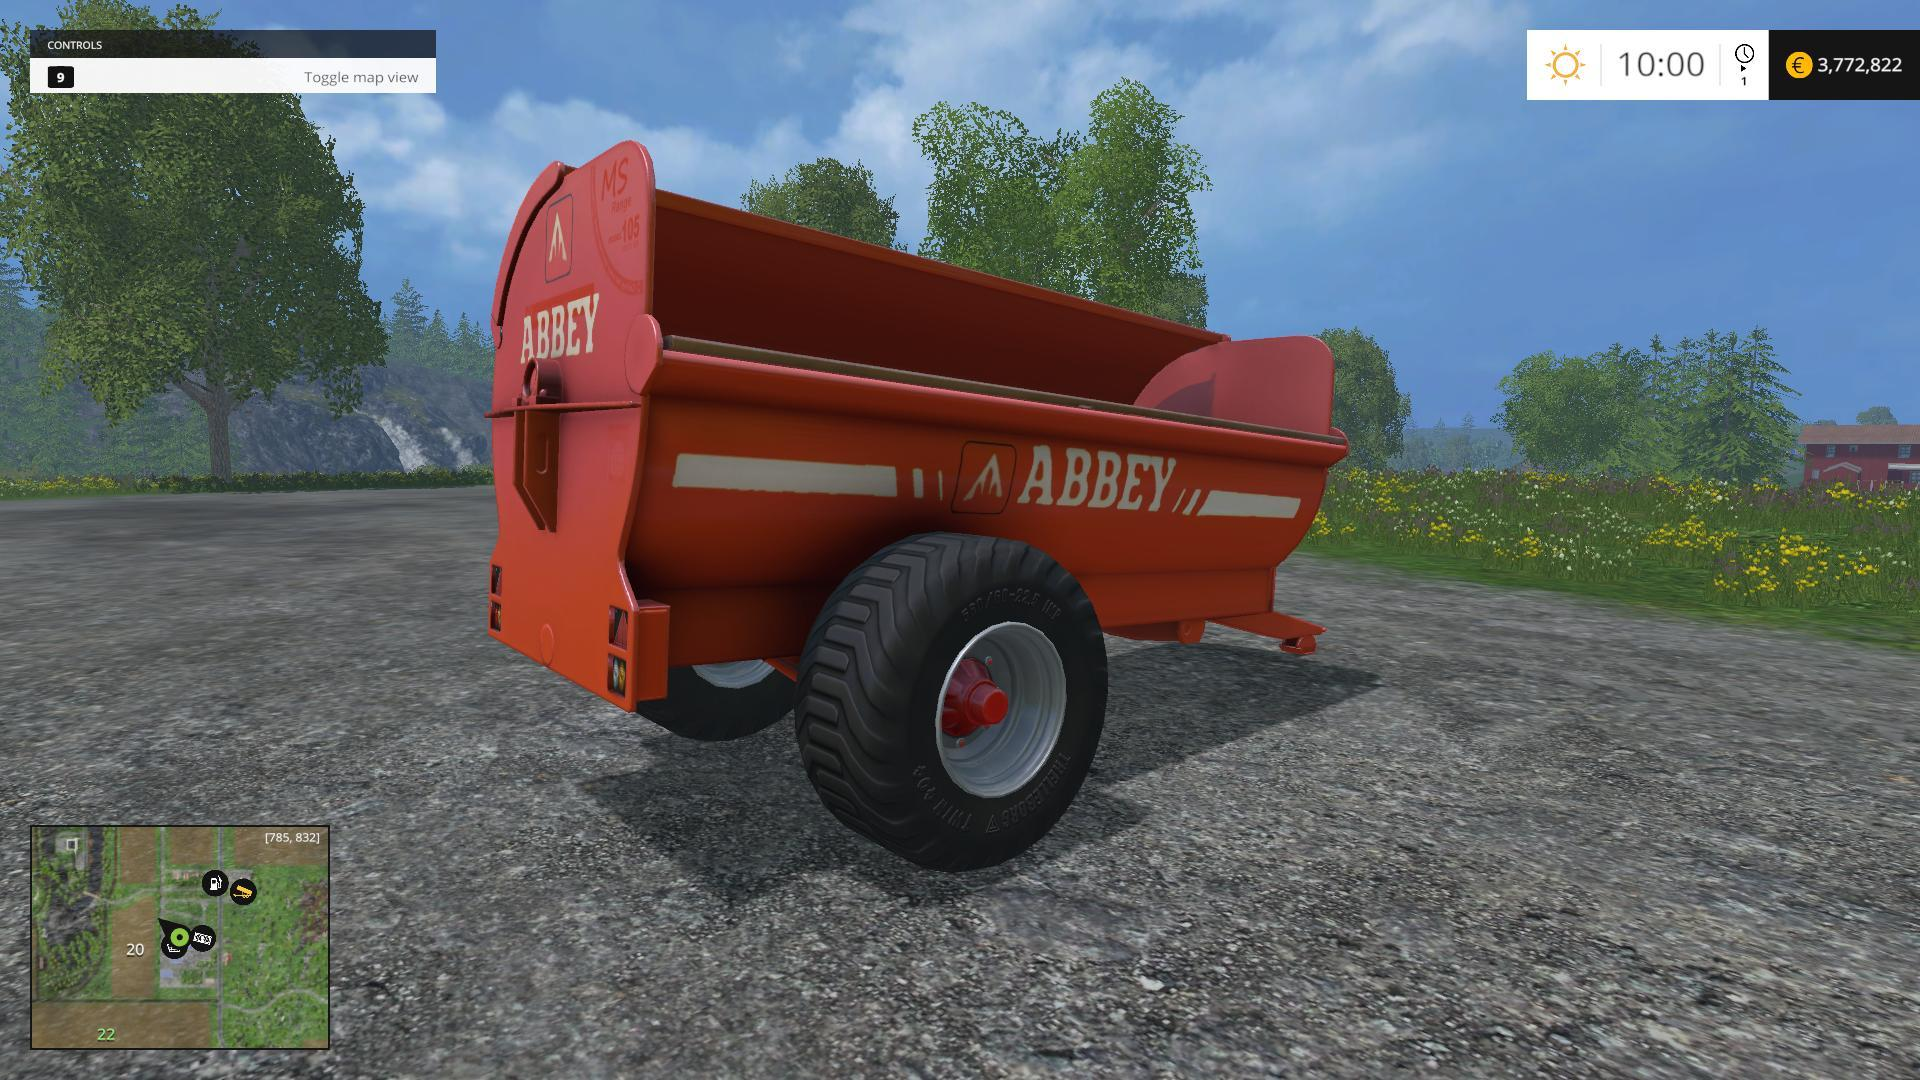 ABBEY MANURE SPREADER V1 MOD - Farming